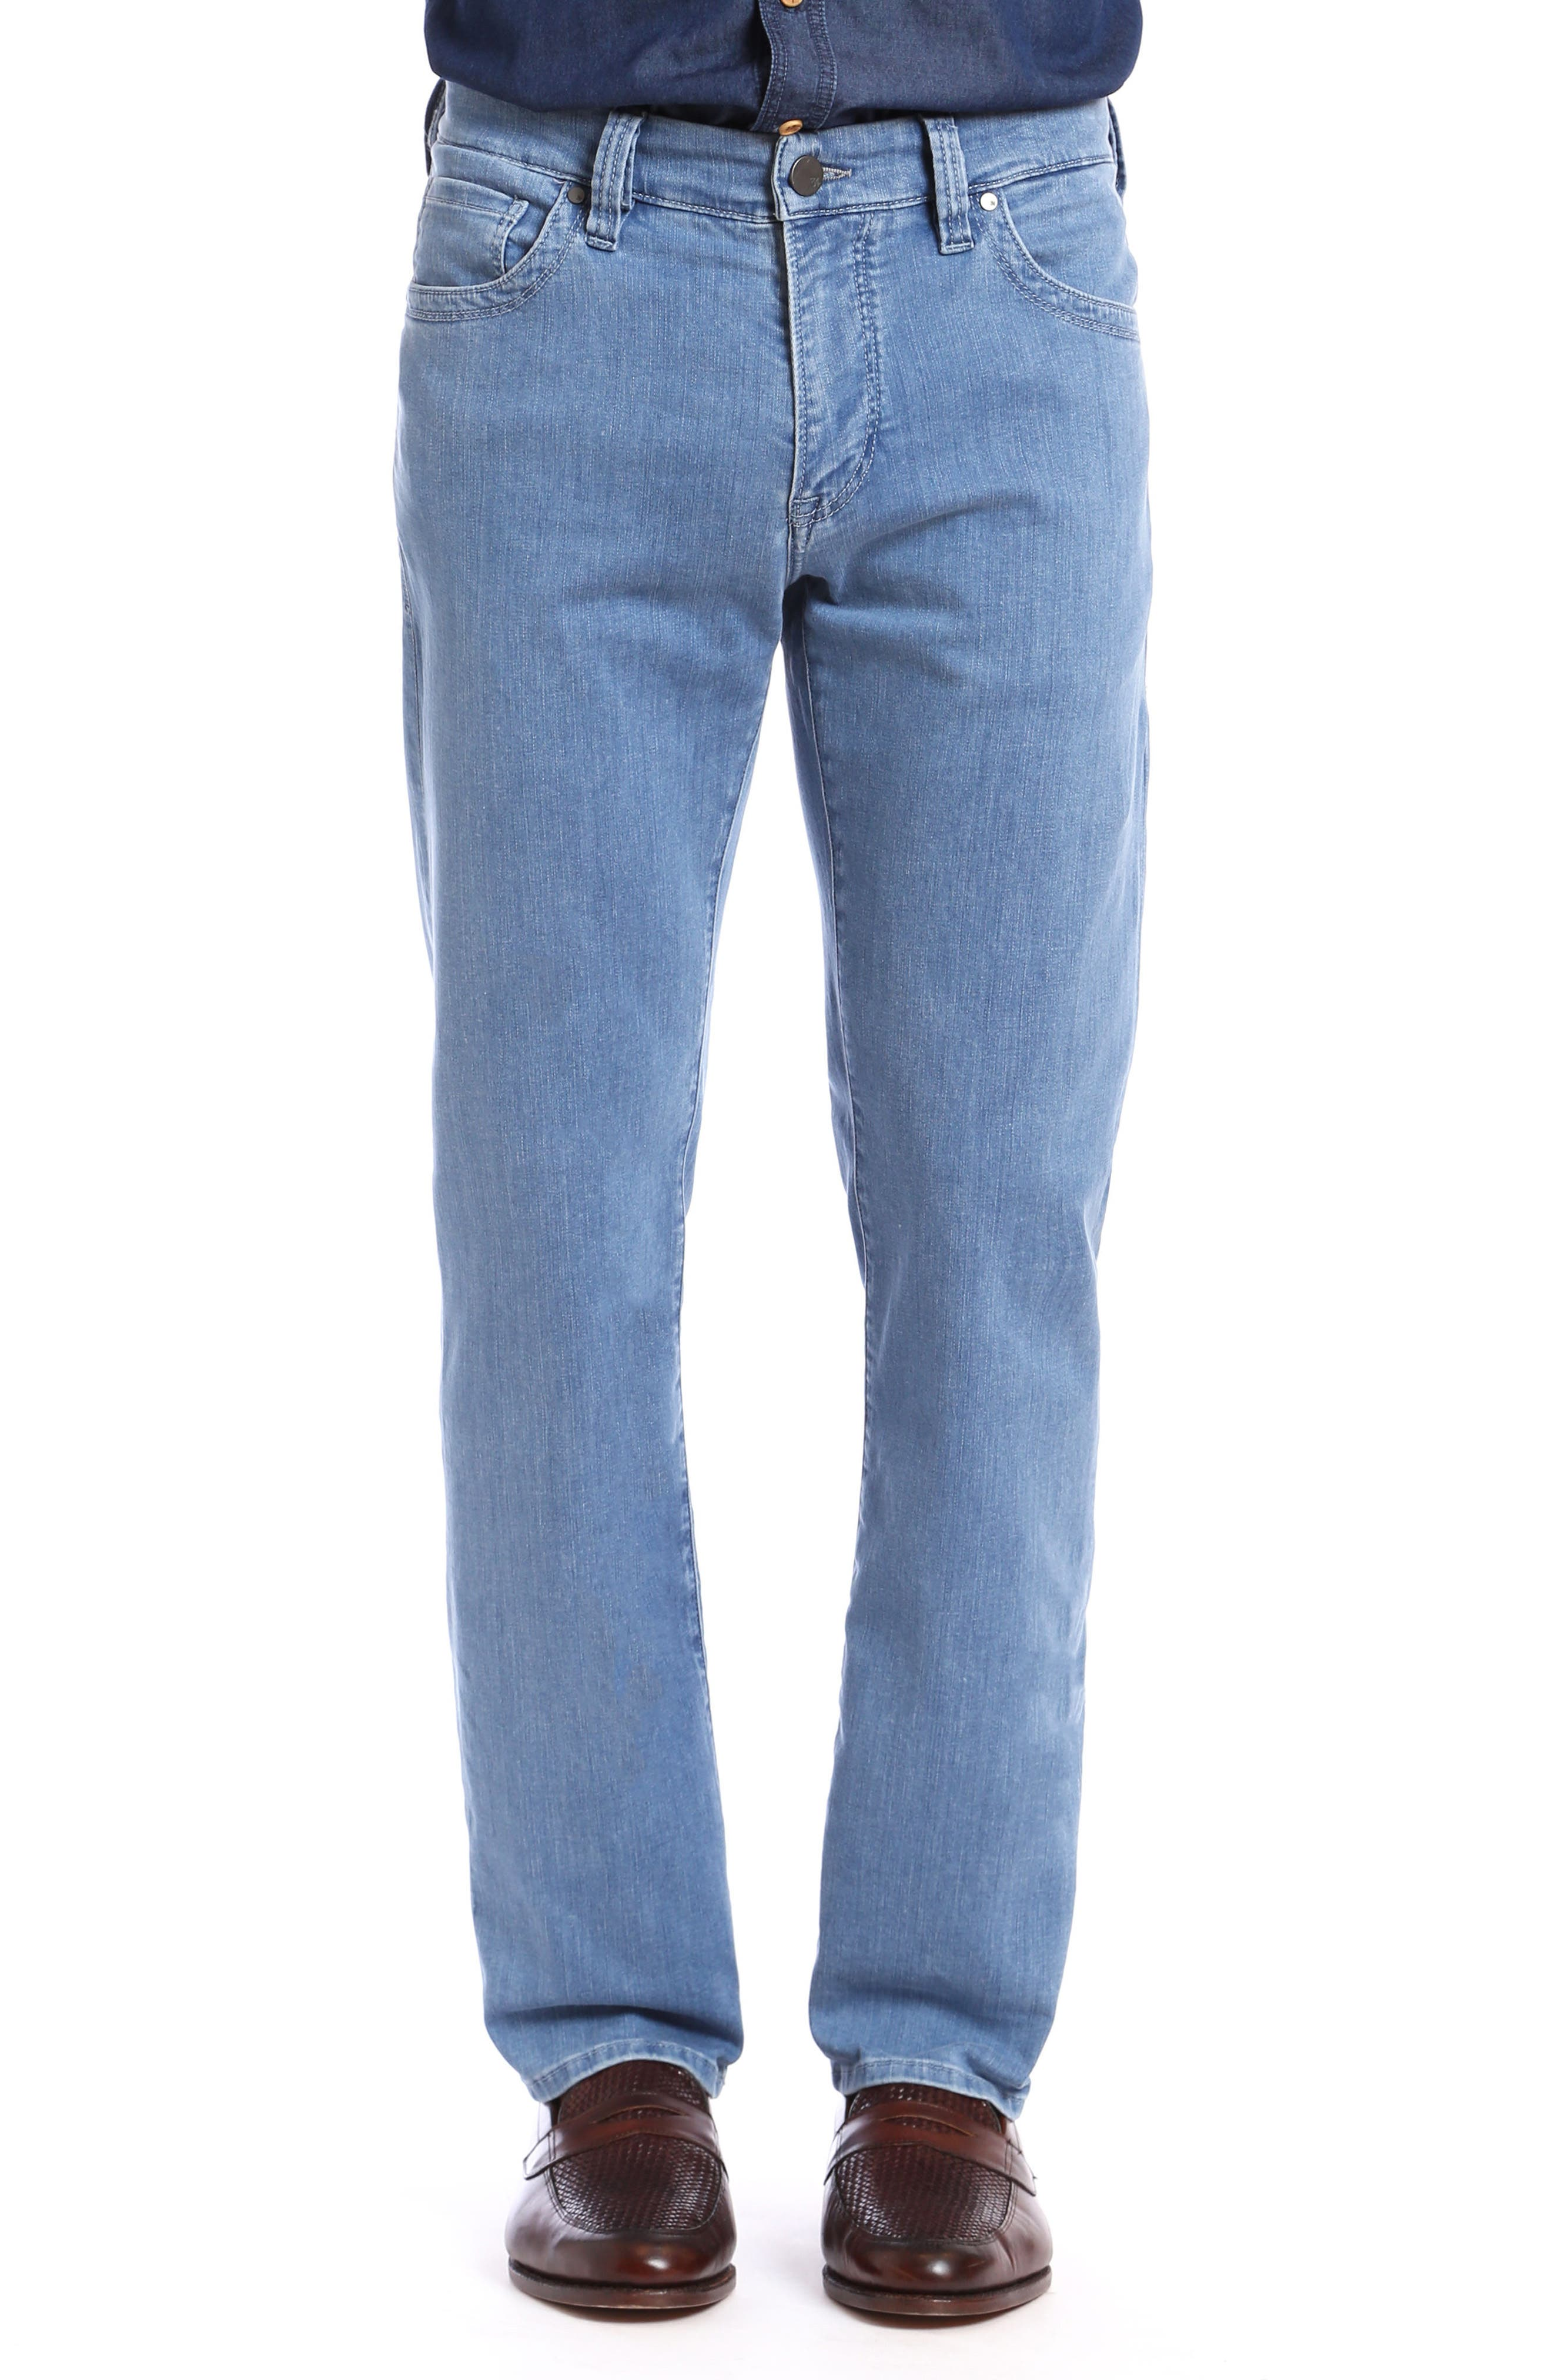 Charisma Relaxed Fit jeans,                             Main thumbnail 1, color,                             Light Milan